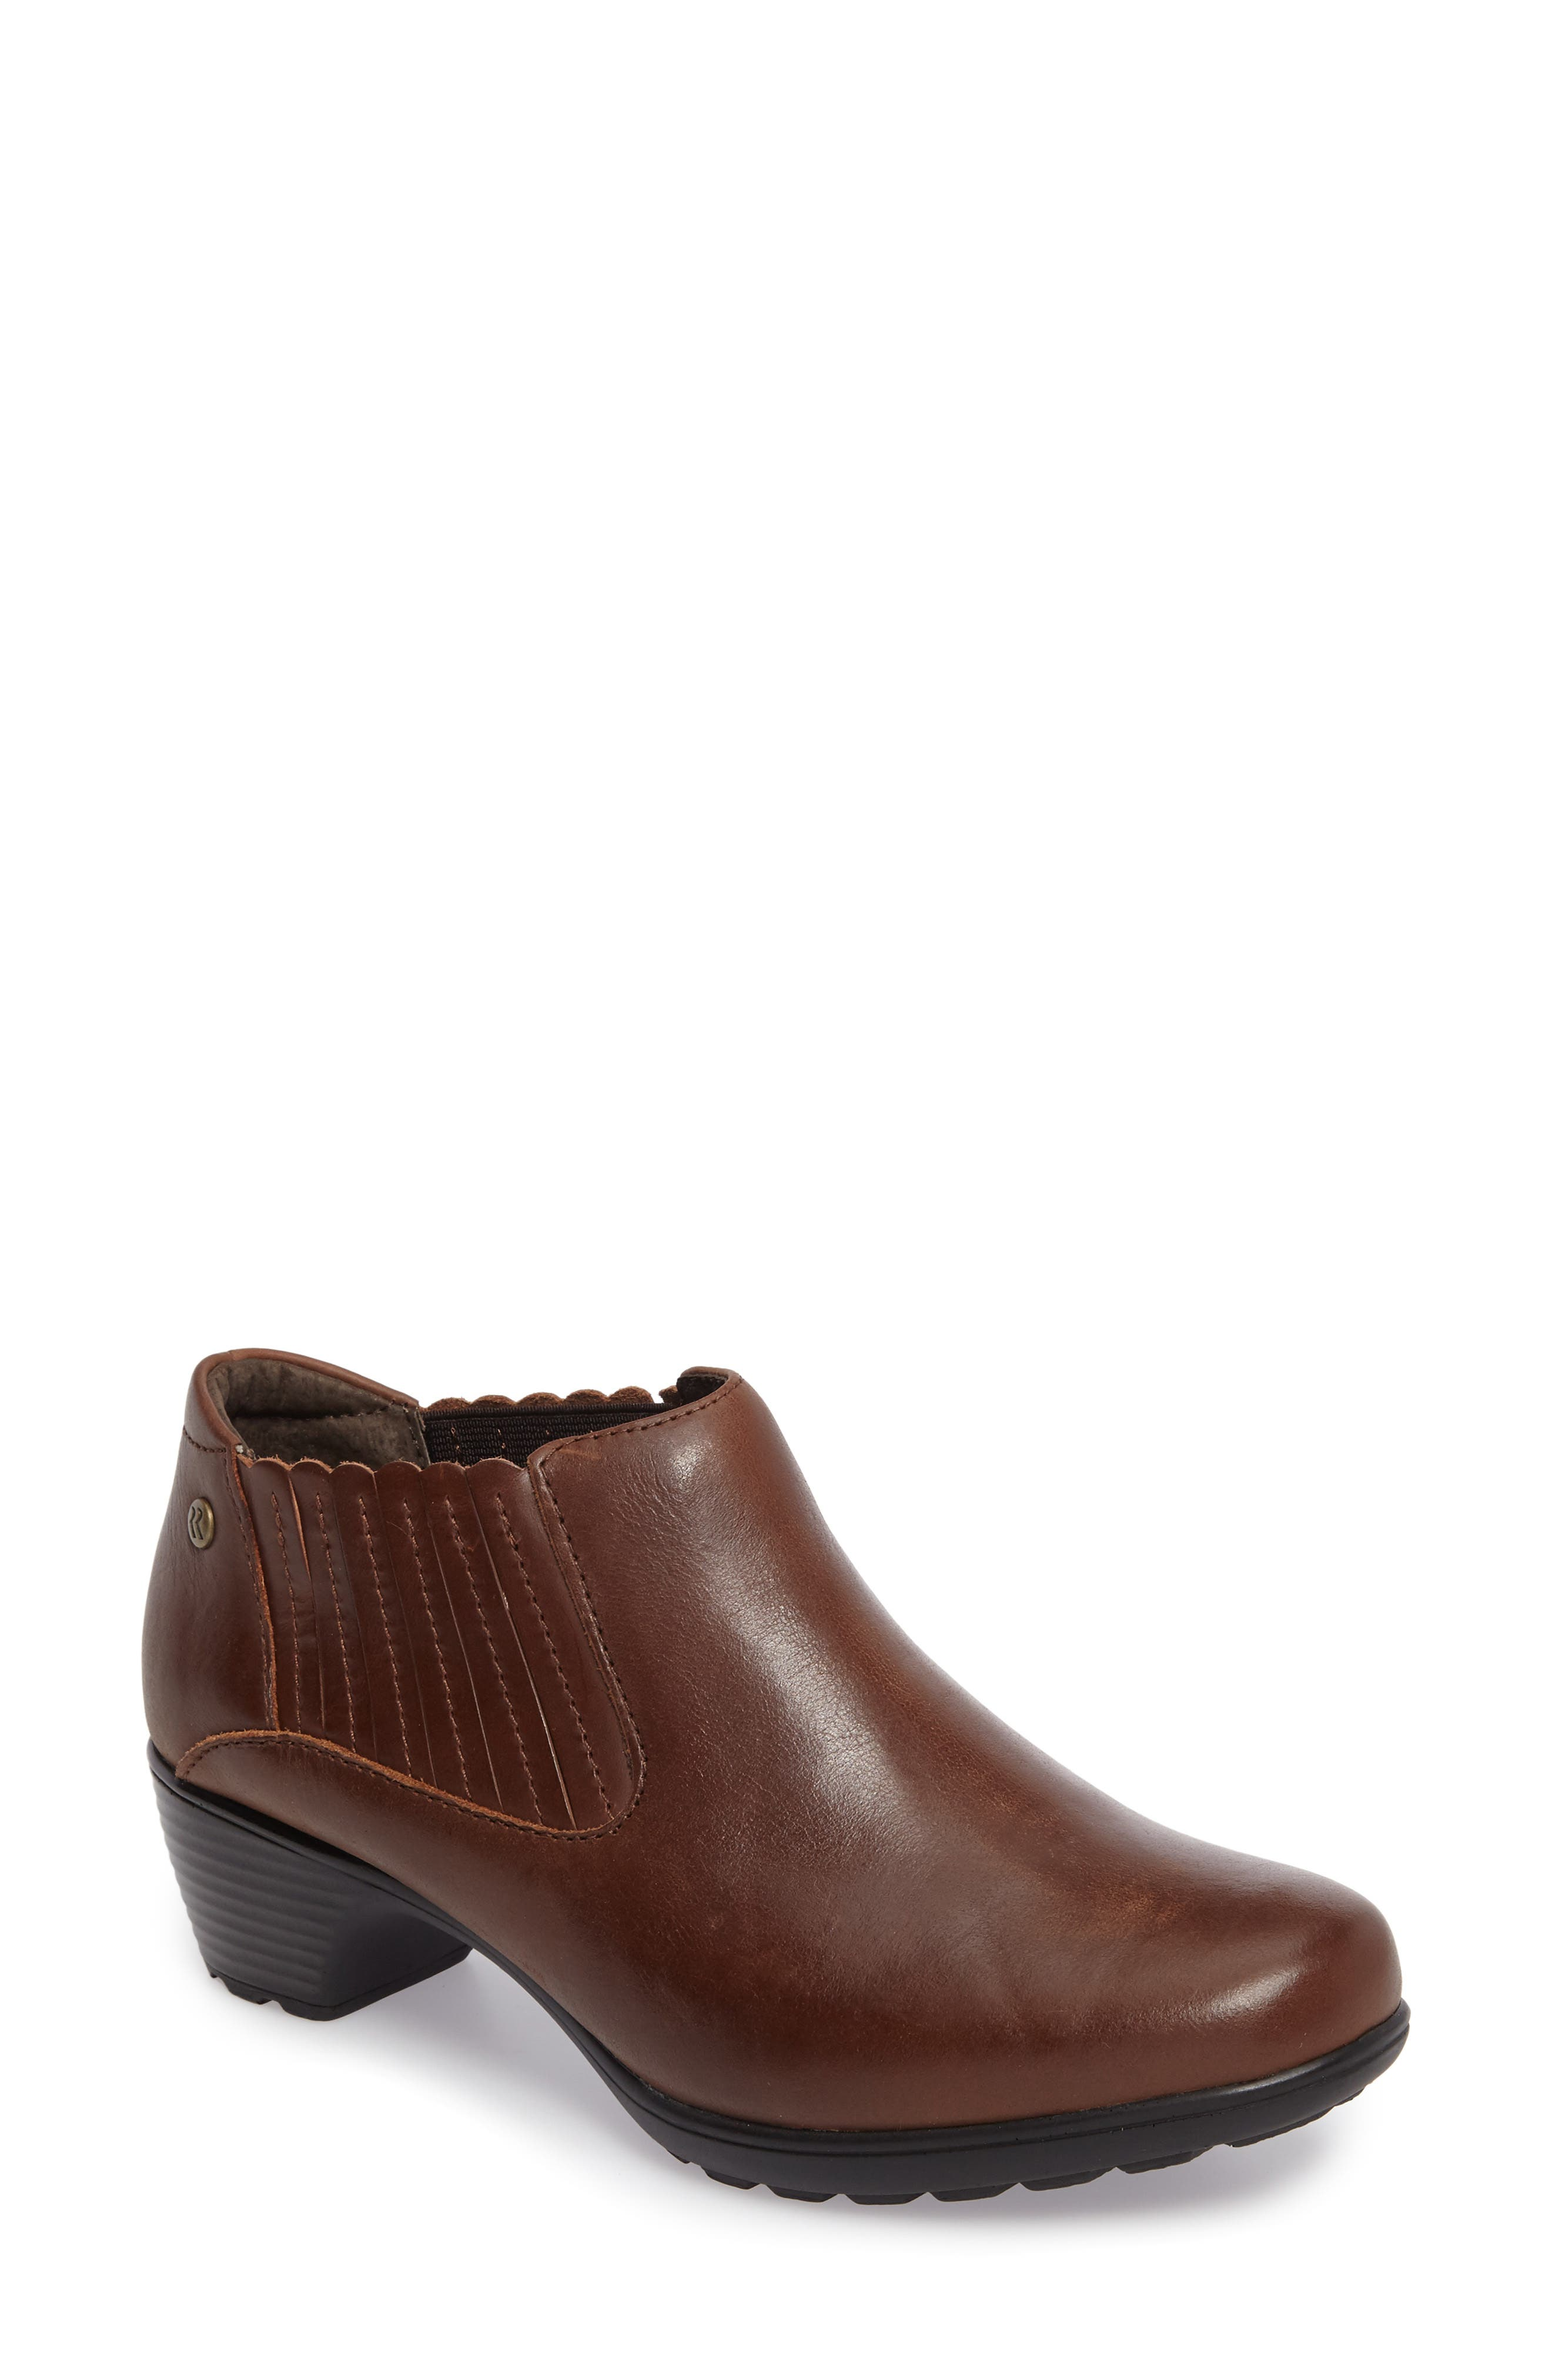 Alternate Image 1 Selected - Romika® 'Banja 15' Bootie (Women)